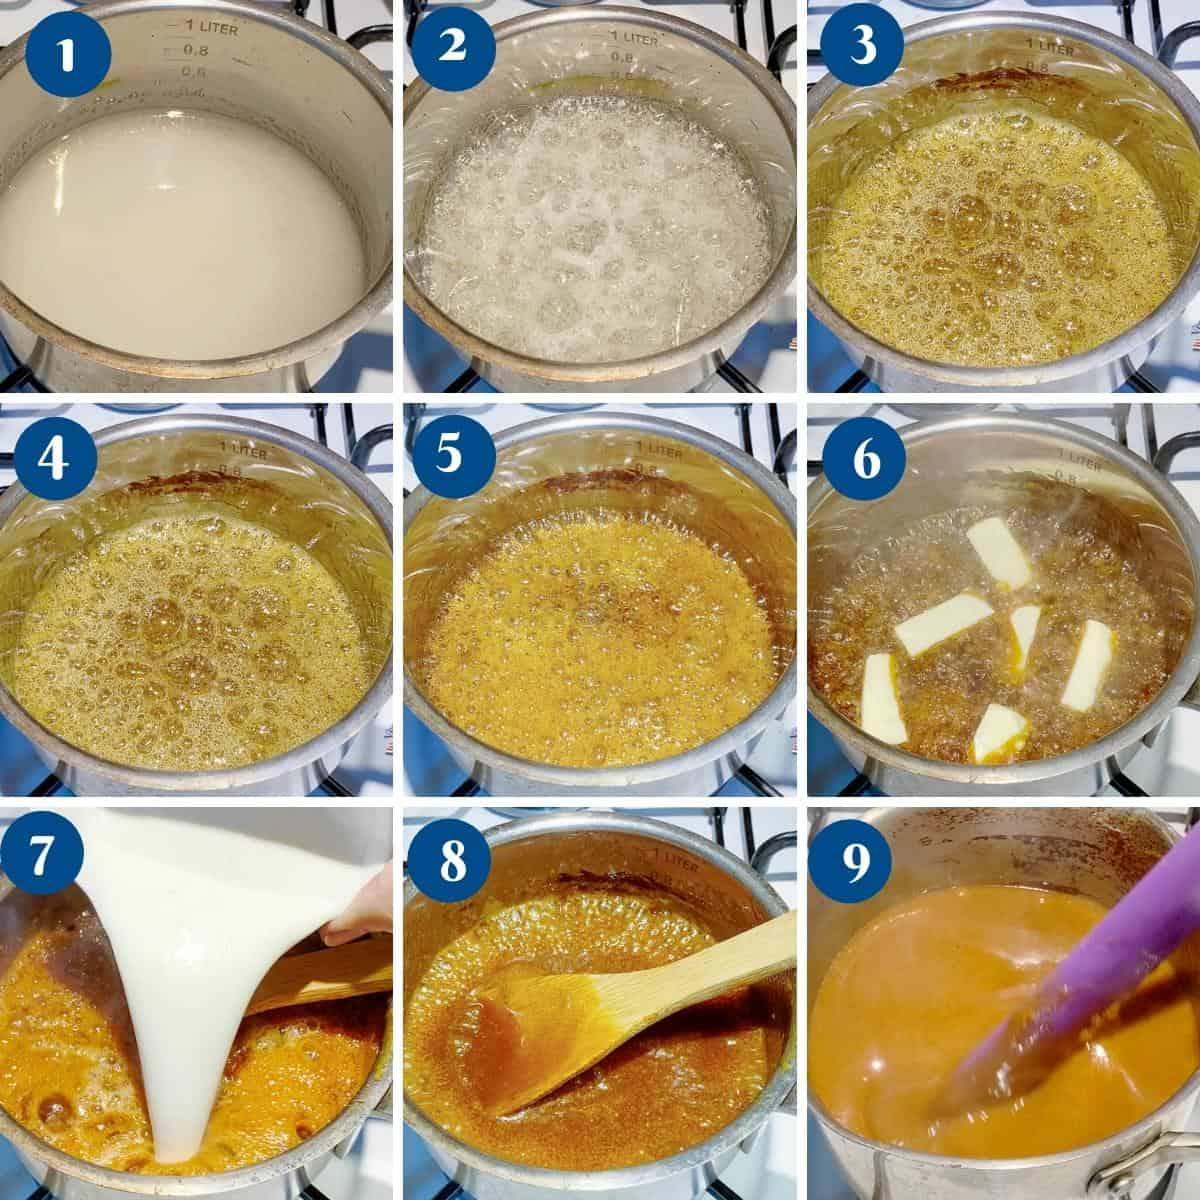 Progress pictures collage for homemade caramel sauce.